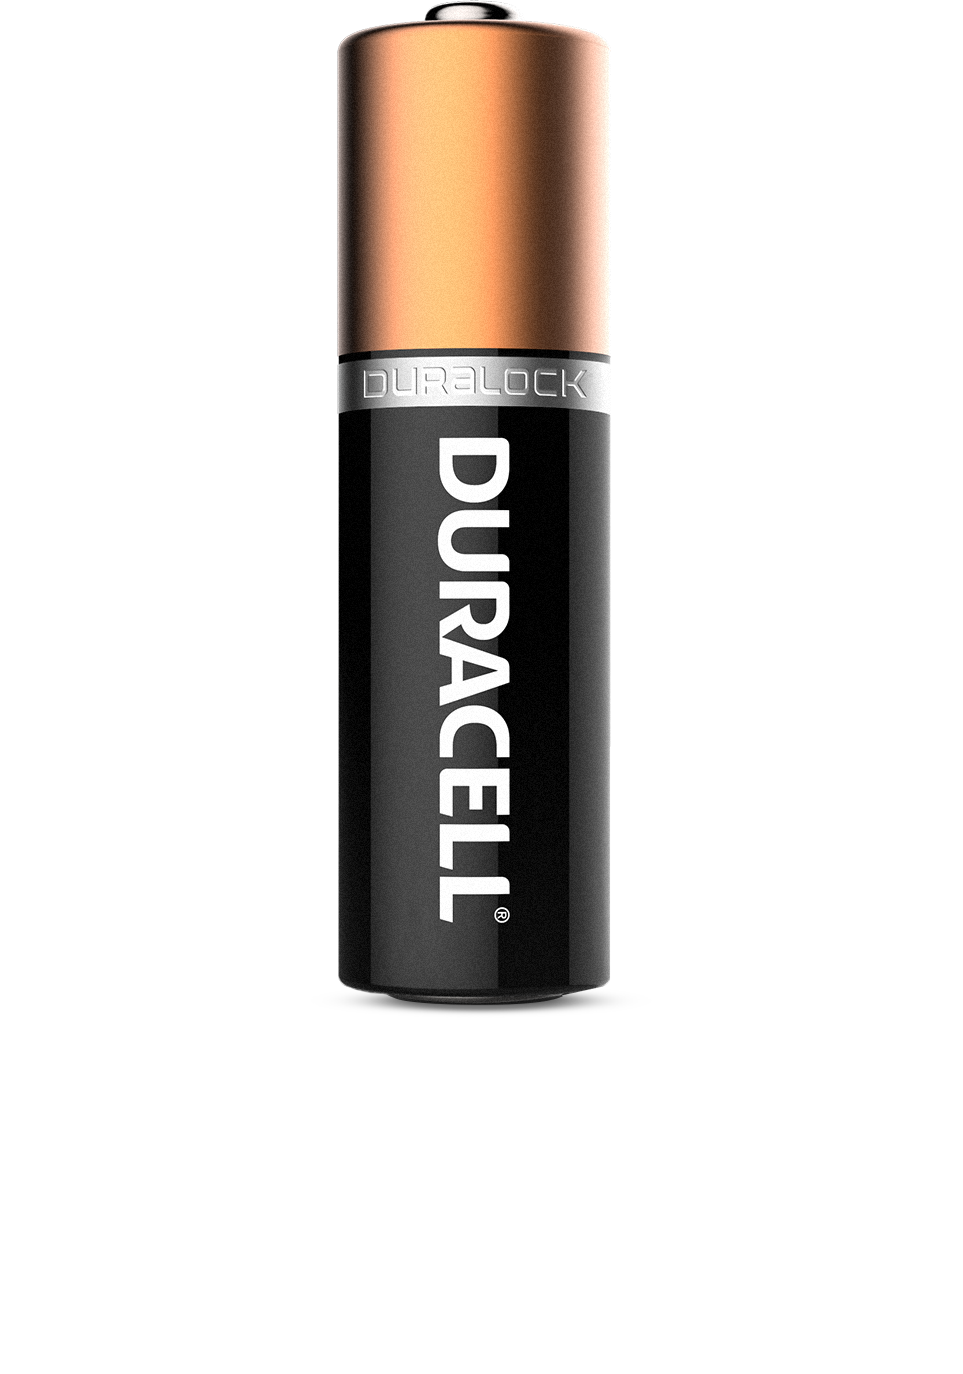 Battery clipart battery duracell. Png